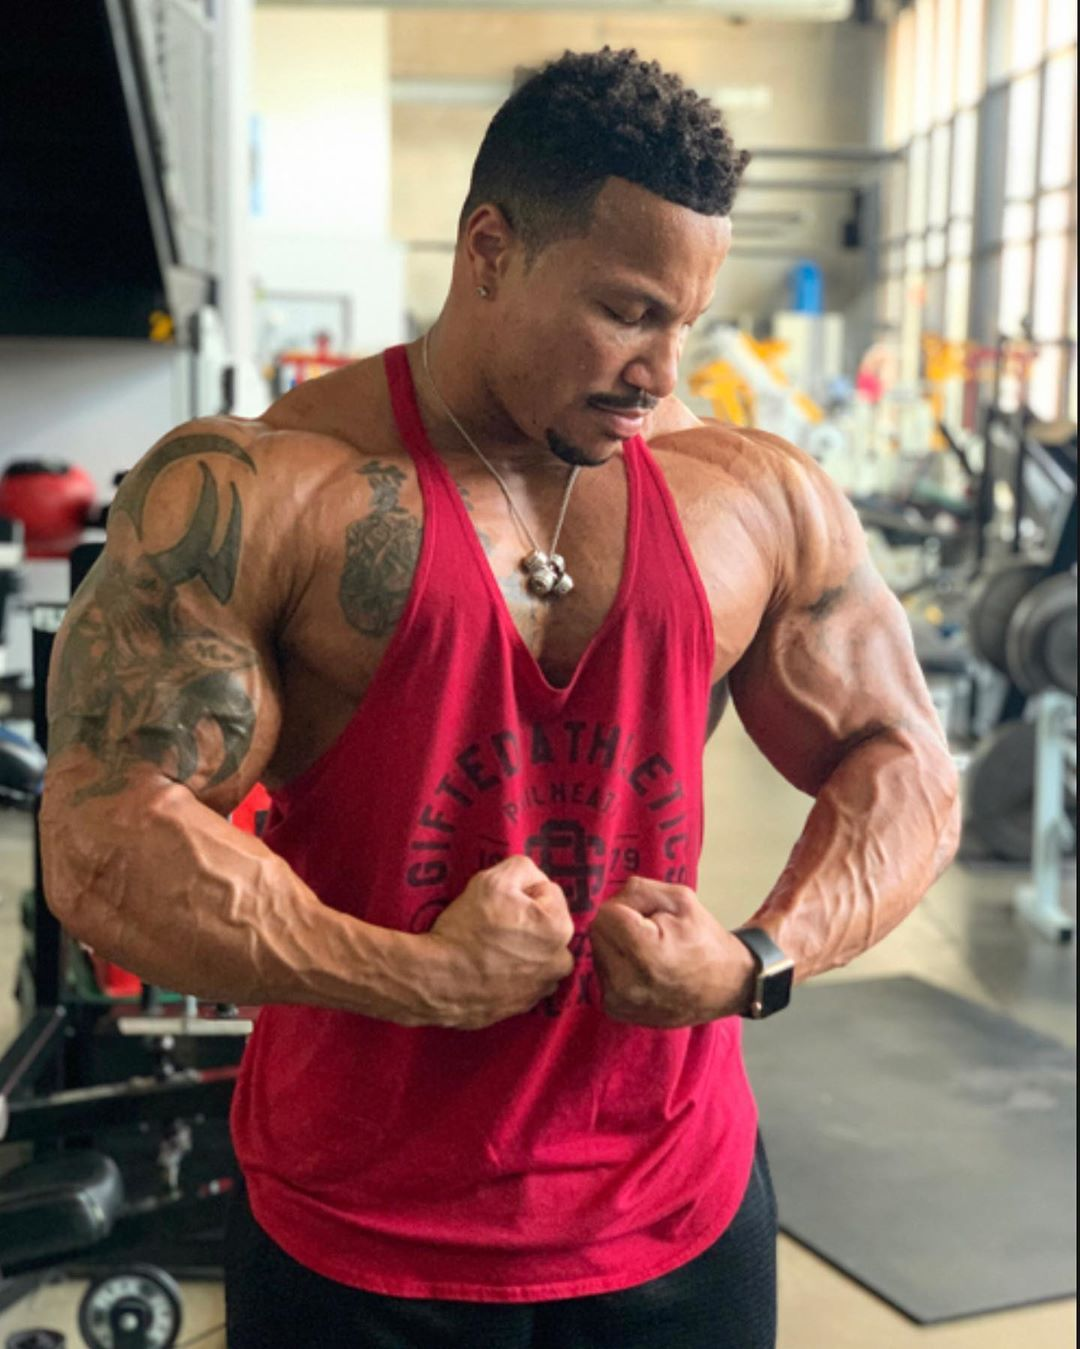 Pin On Fitness And Bodybuilding